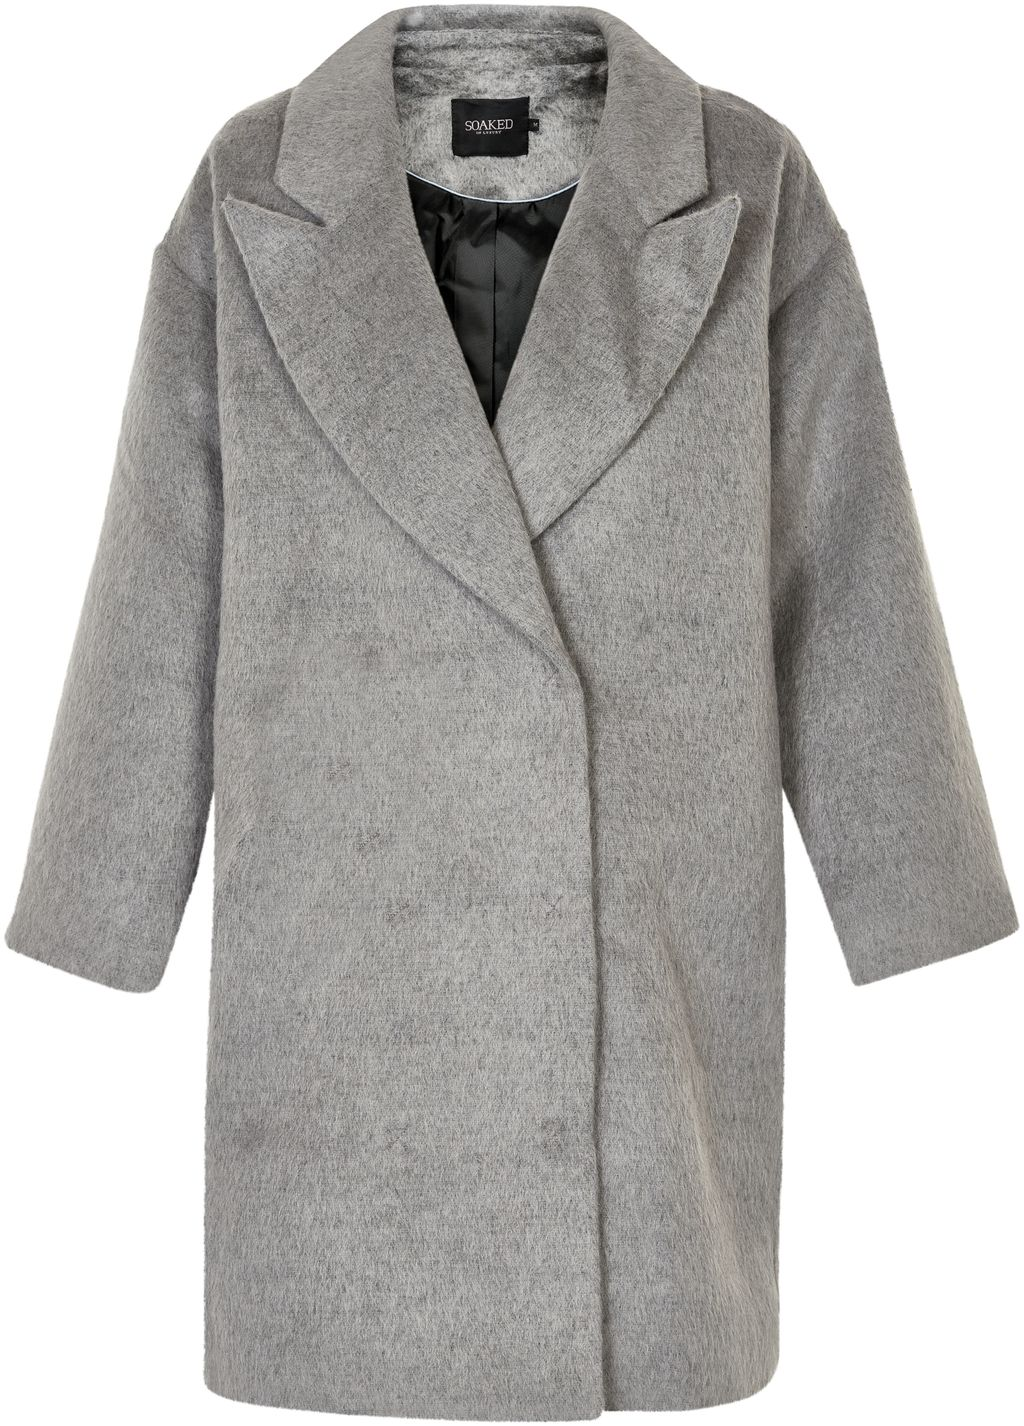 Oversized Coat, Grey - pattern: plain; fit: loose; style: single breasted; collar: standard lapel/rever collar; length: mid thigh; predominant colour: light grey; occasions: casual, creative work; fibres: wool - mix; sleeve length: long sleeve; sleeve style: standard; collar break: medium; pattern type: fabric; texture group: woven bulky/heavy; wardrobe: basic; season: a/w 2016